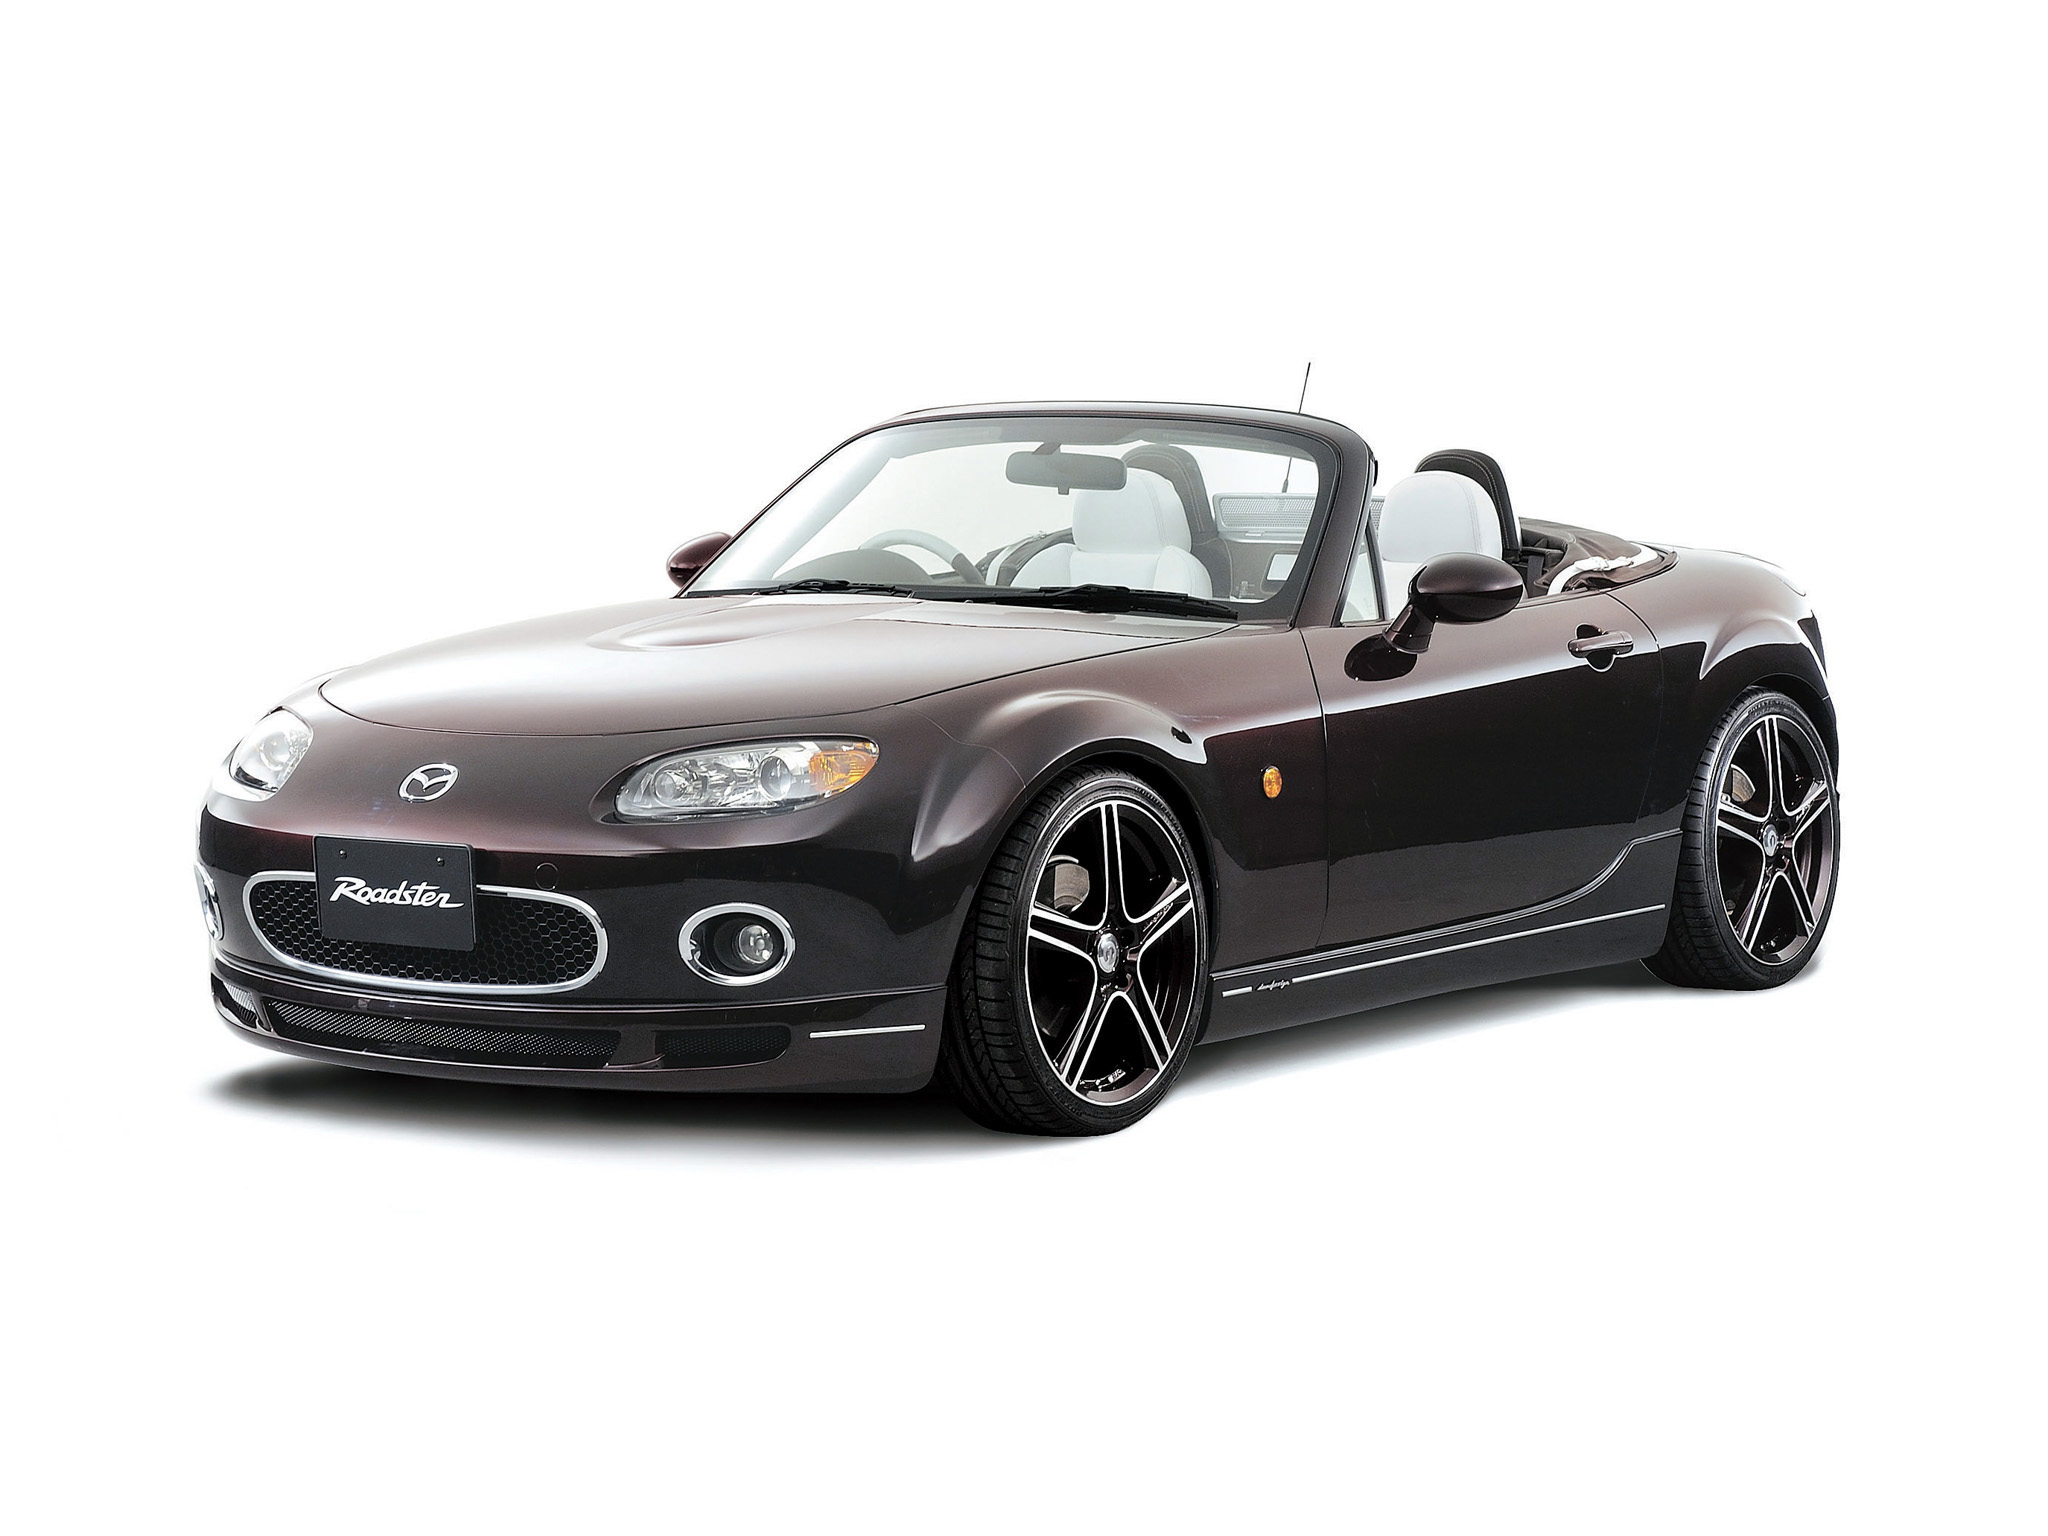 damd mazda mx 5 black metal roadster nc ec 2005 damd mazda. Black Bedroom Furniture Sets. Home Design Ideas